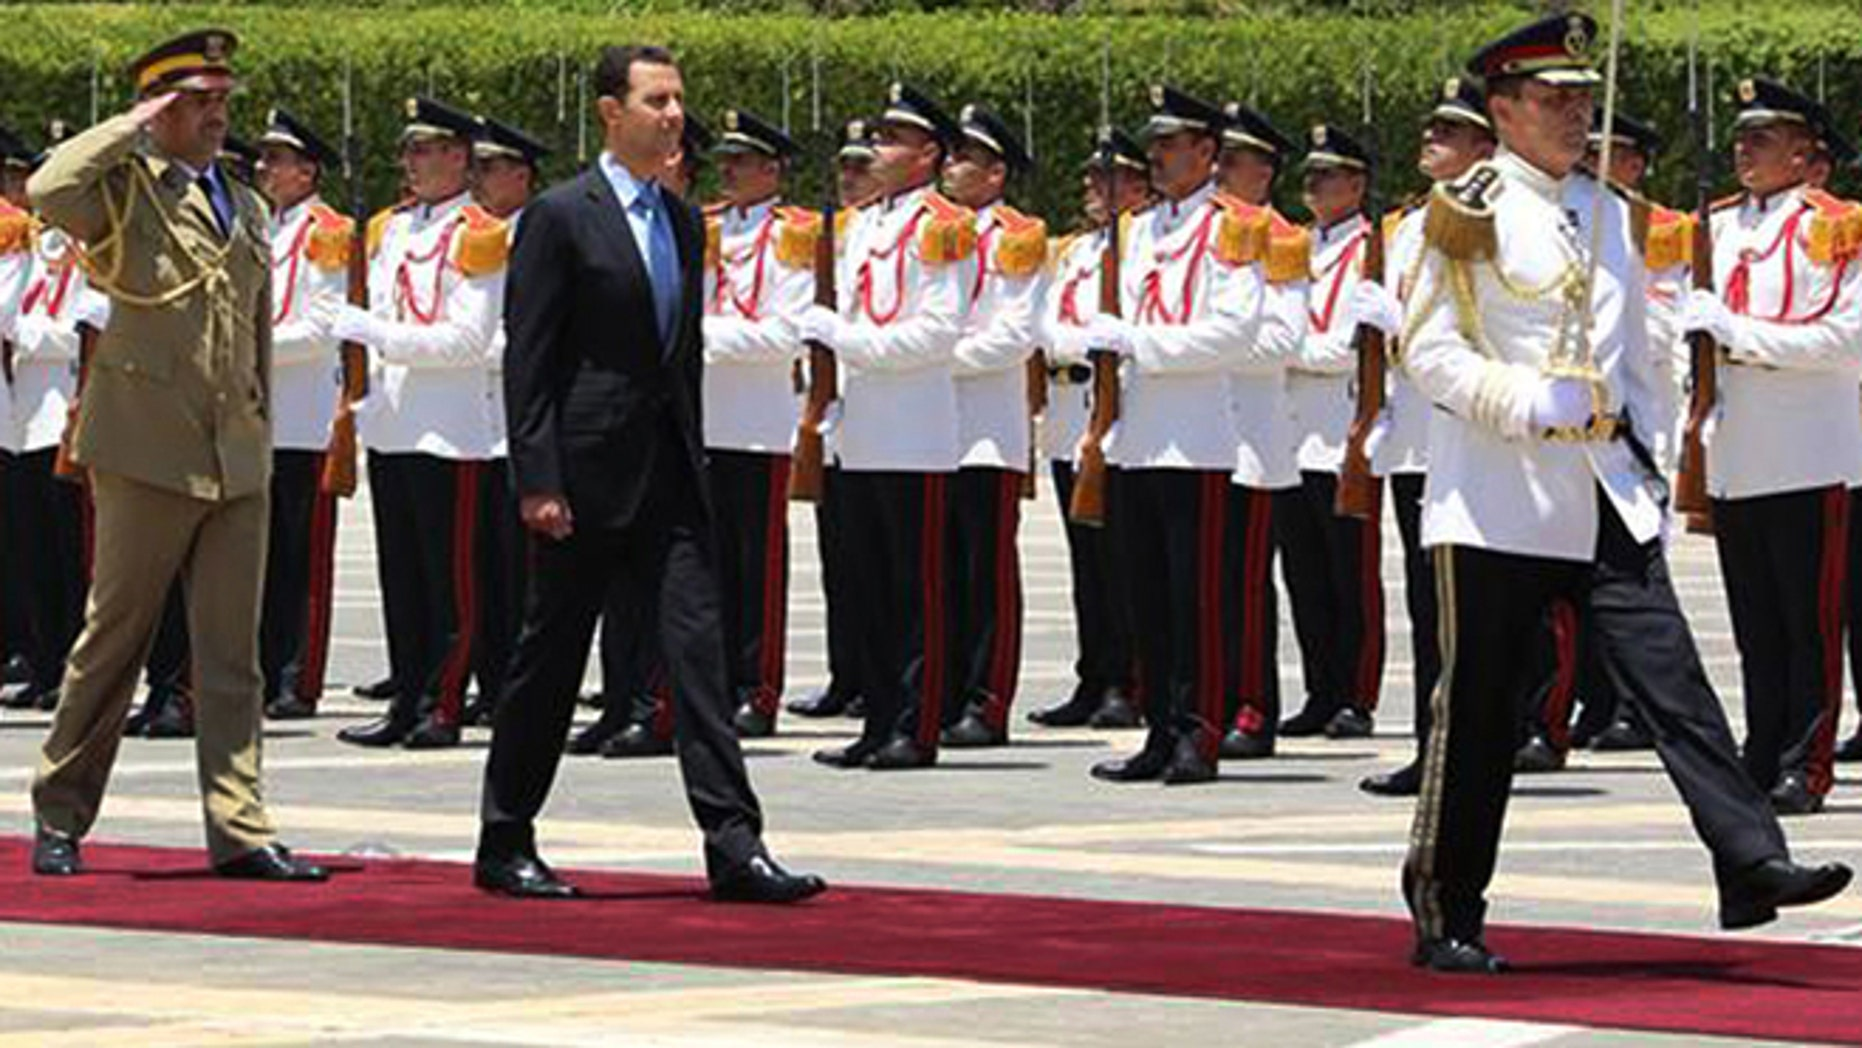 July 16, 2014: In this photo released by the Syrian official news agency SANA, Syria's President Bashar Assad, center, reviews the honor guard upon his arrival at the presidential palace to take the oath of office for his third, seven-year term, in Damascus, Syria.